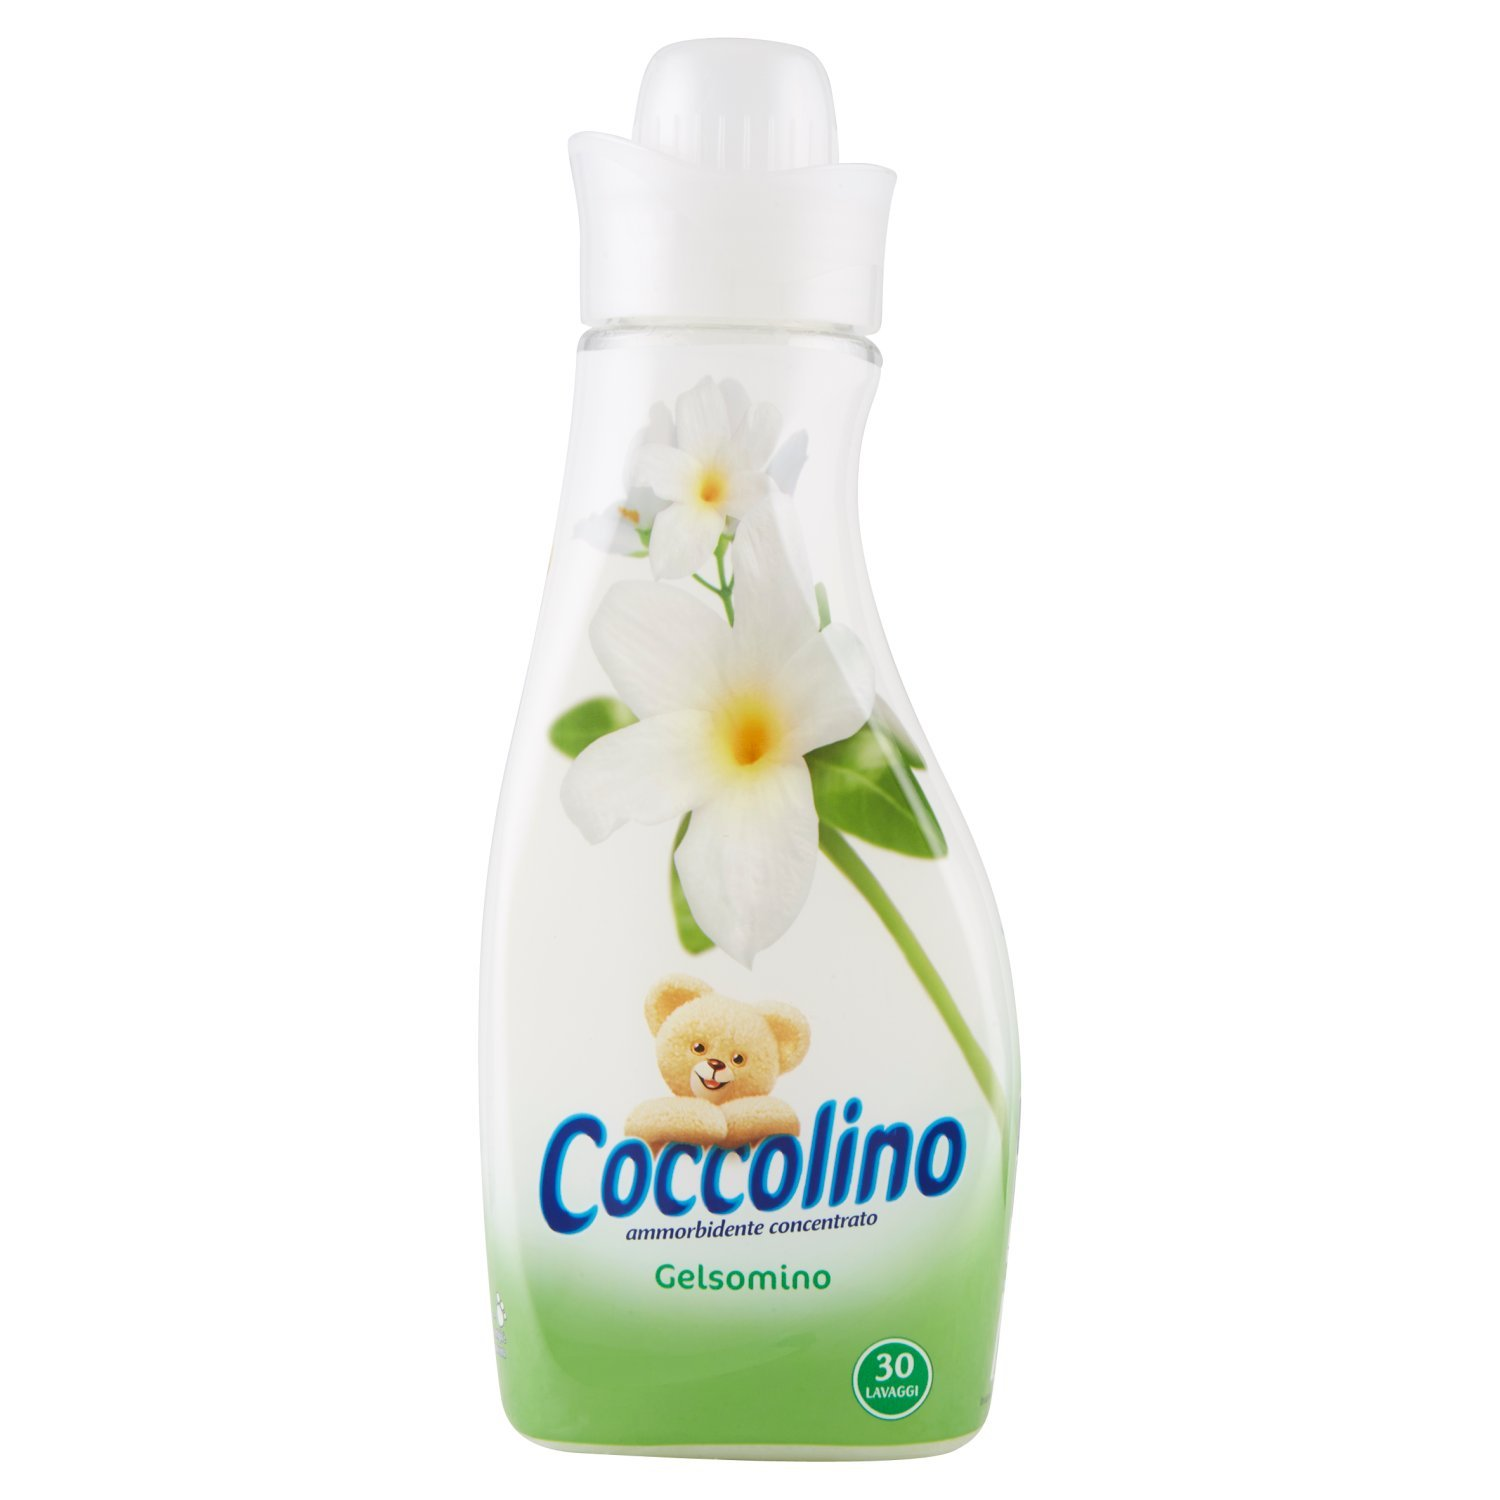 Coccolino Ammorbidente Concentrato Gelsomino 750 ml